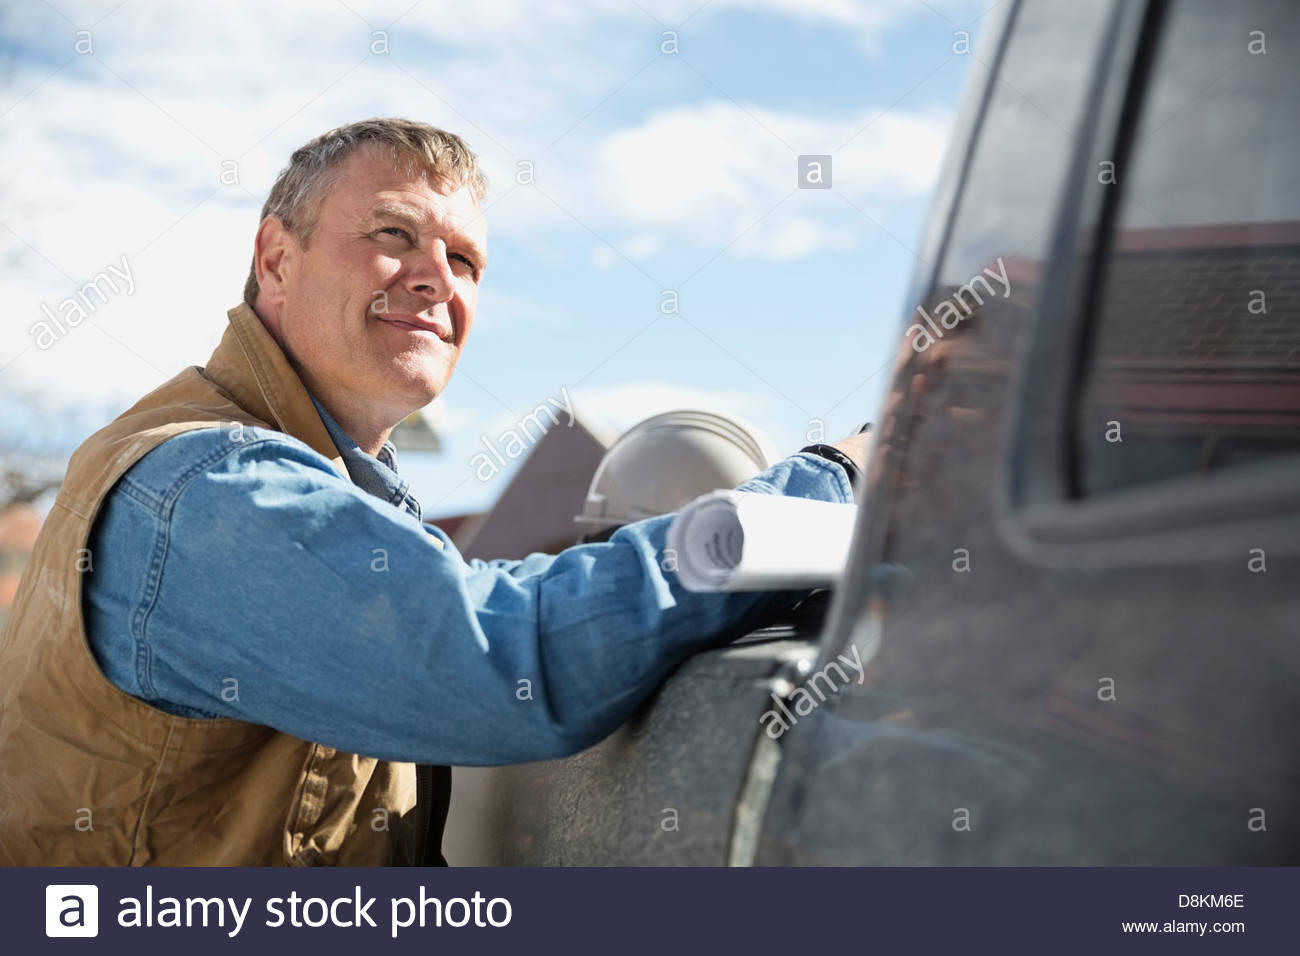 Foreman looking away leaning on truck - Stock Image